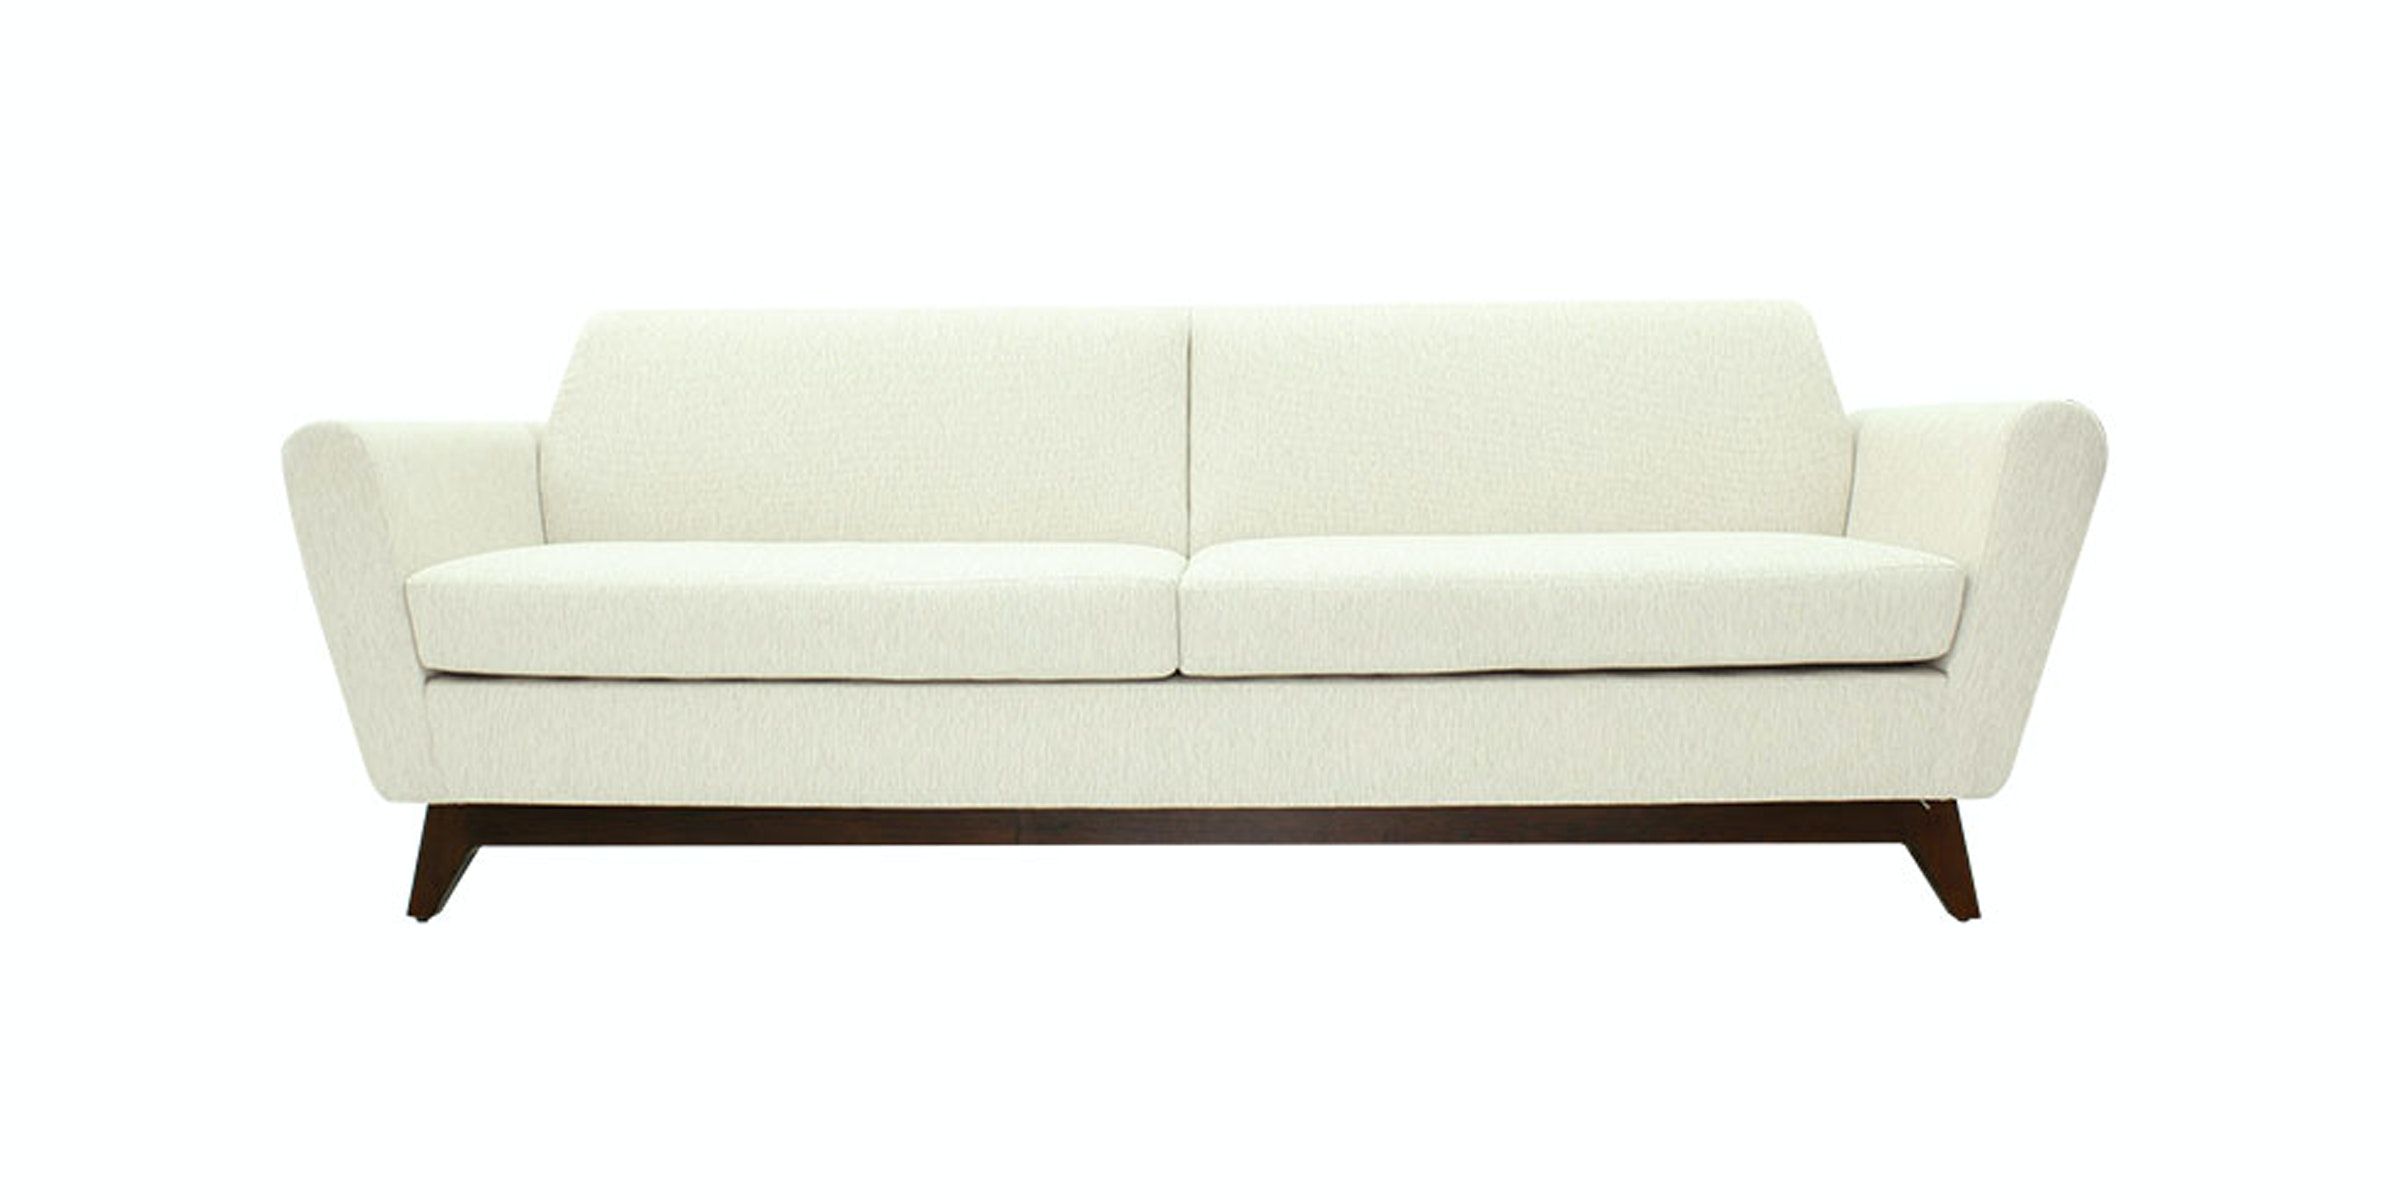 Nestudio Frankie Forte Three Seater Sofa White Chocolate